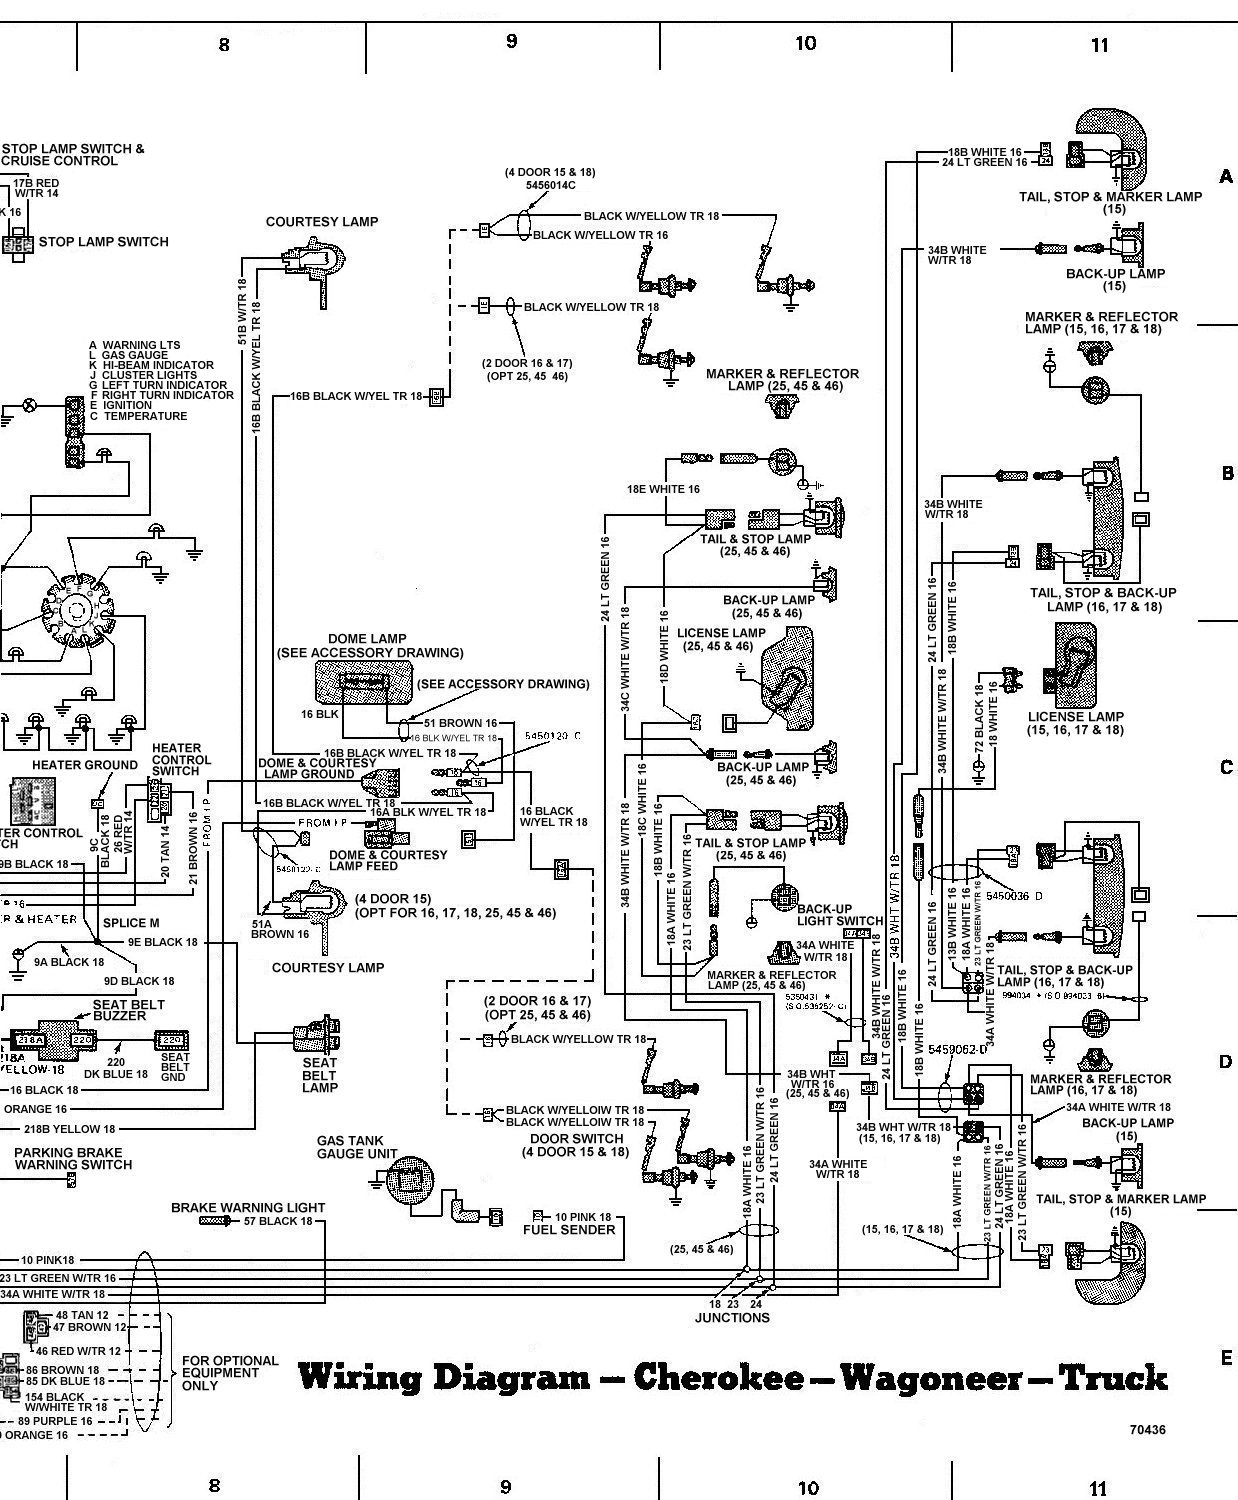 Jeep 4.0 Wiring Harness - Data Wiring Diagram Today - 2000 Jeep Grand Cherokee Wiring Diagram